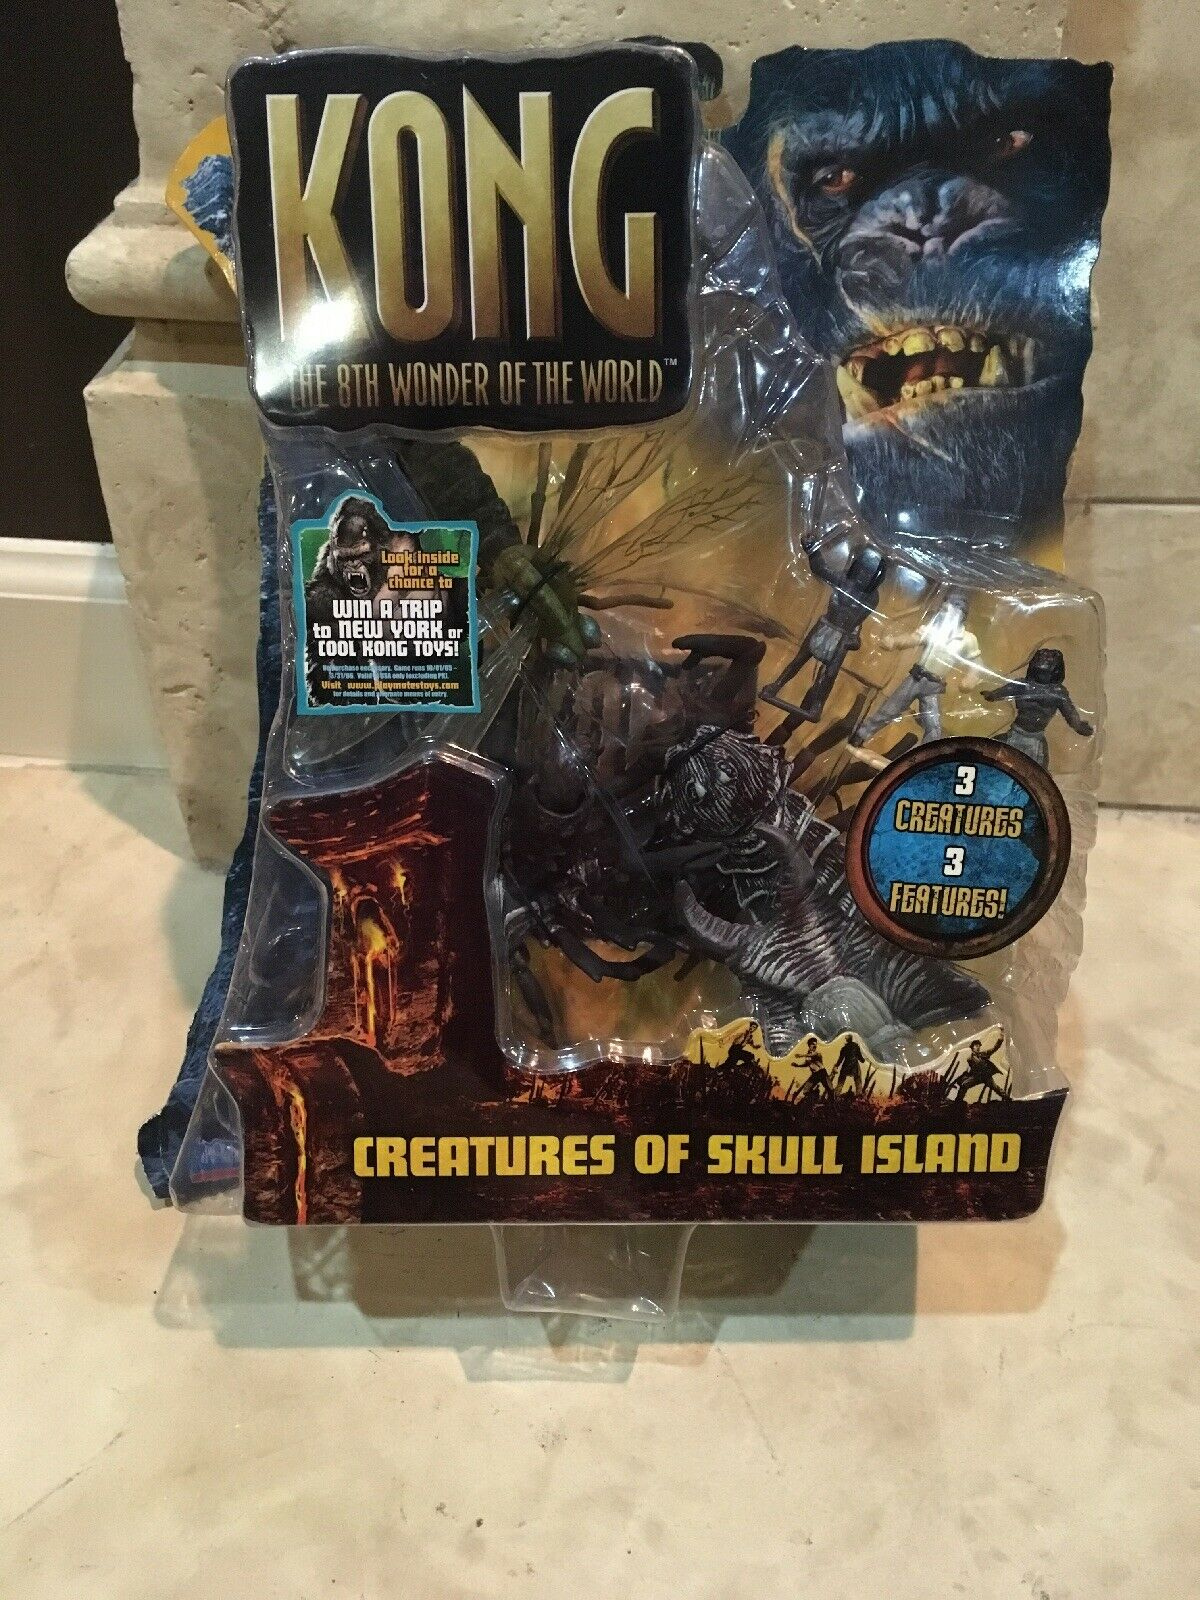 re Kong 8th Wonder Of The World CREATURES OF SKULL ISLe cifras, Playmates